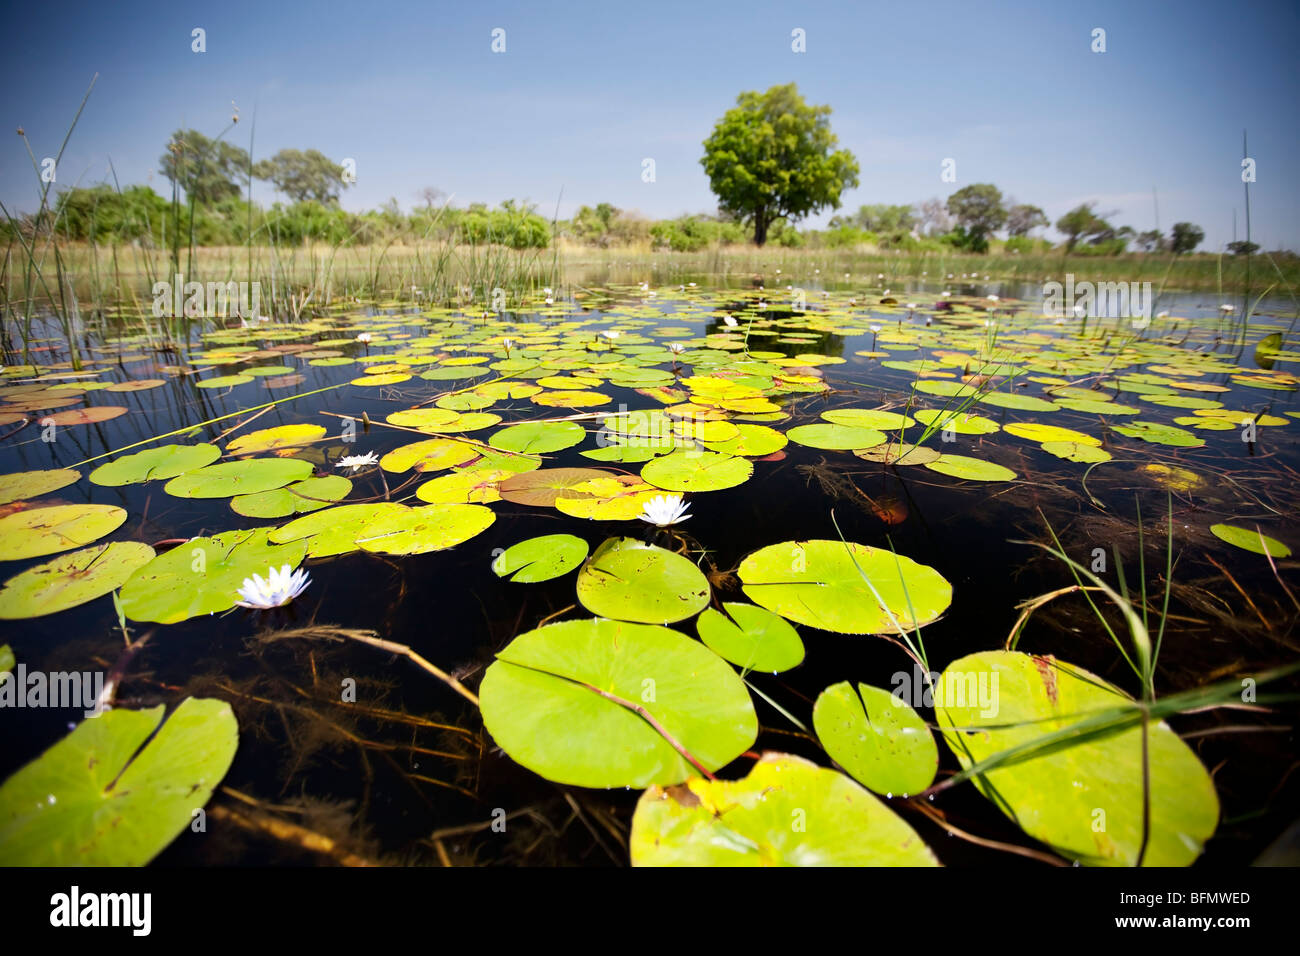 Botswana, Okavango Delta. Lilys cover the surface of the crystal clear waters of the Okavango Delta. - Stock Image